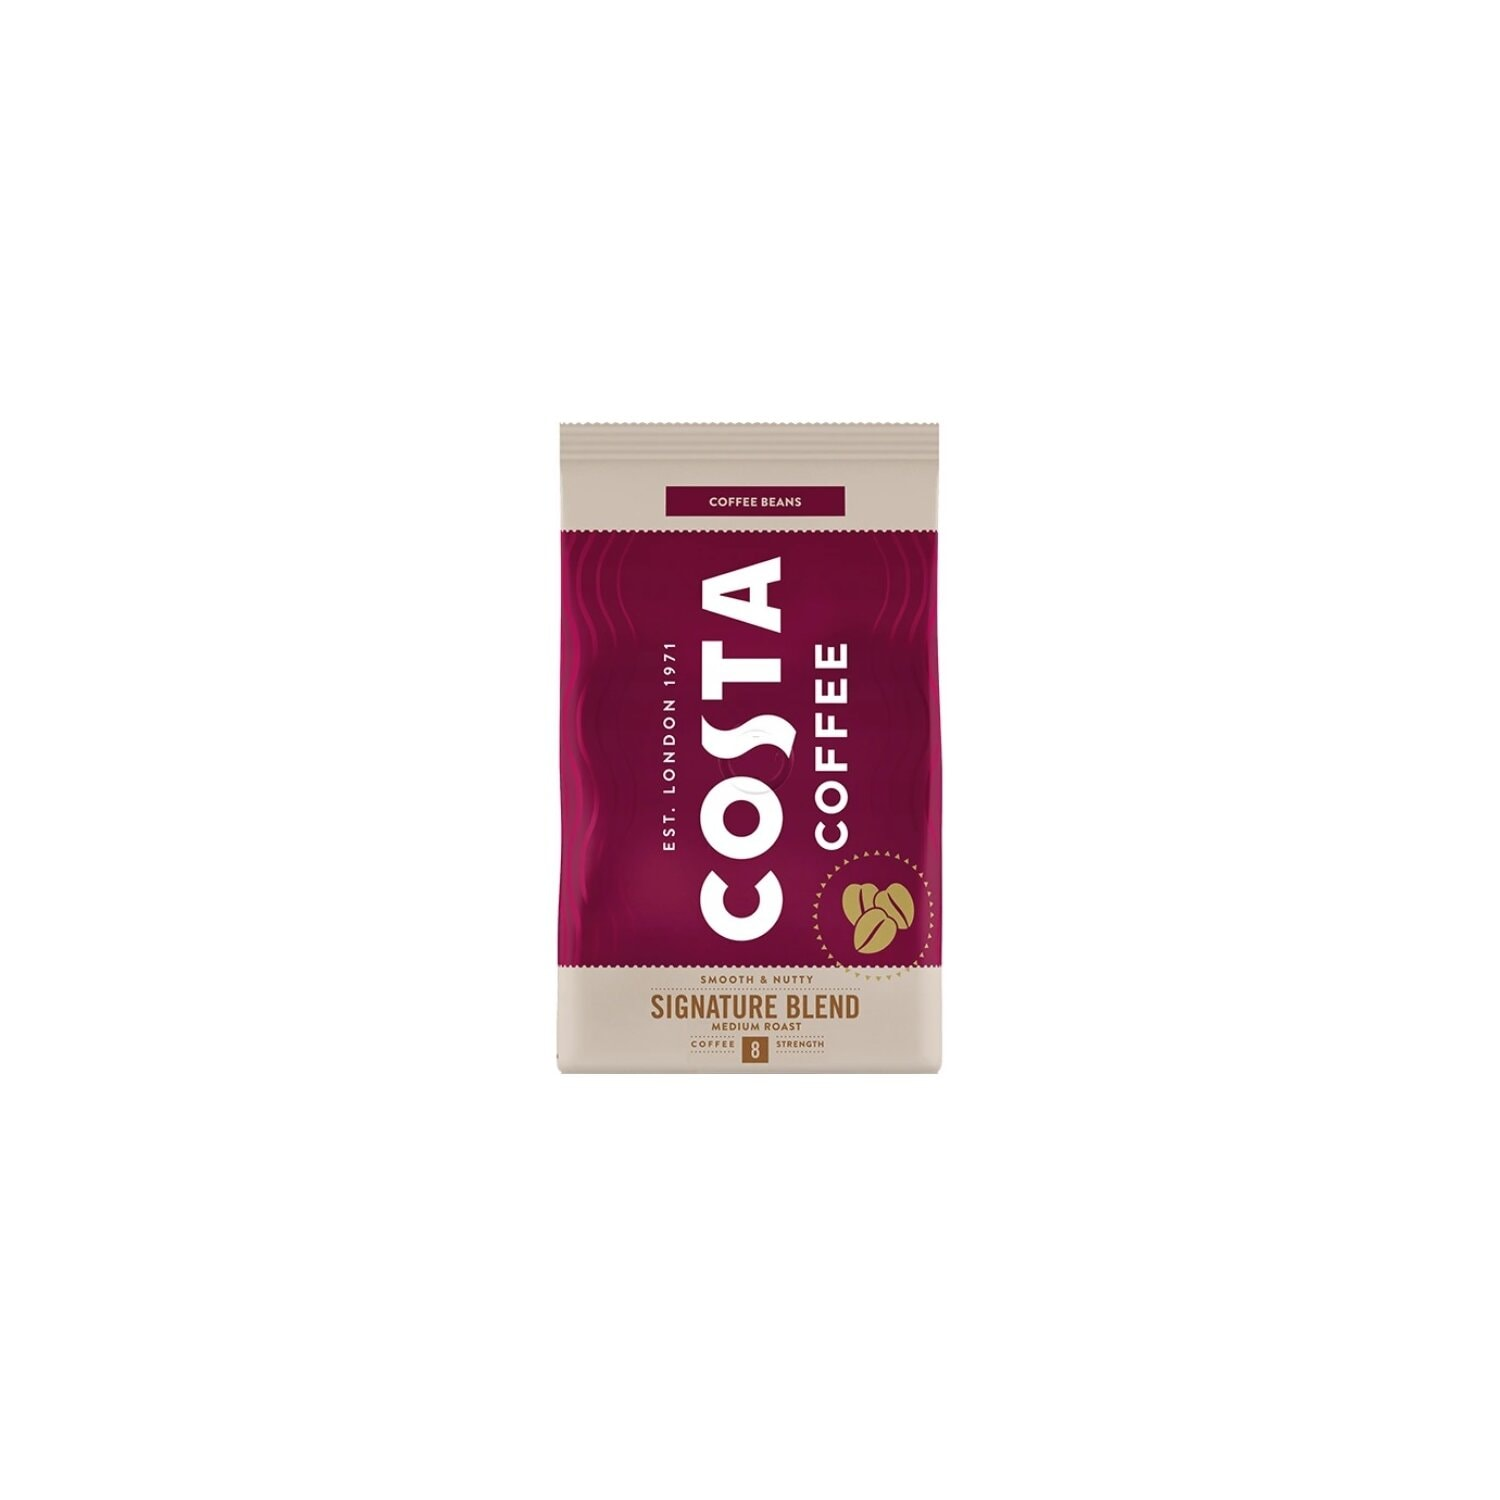 Kawa COSTA COFFEE Sign Medium 1kg